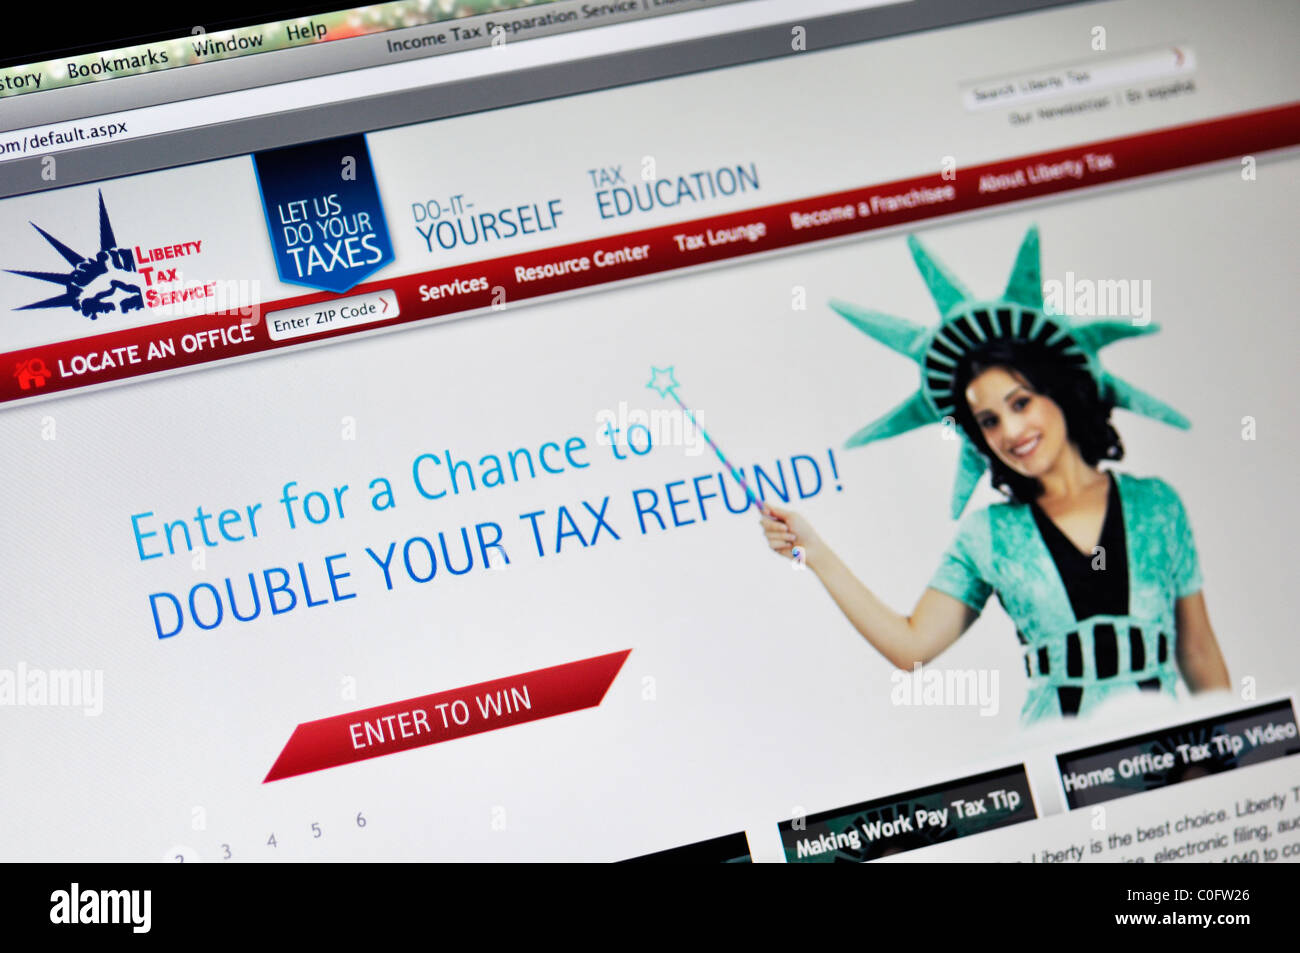 Liberty Tax Service income tax preparation website - Stock Image